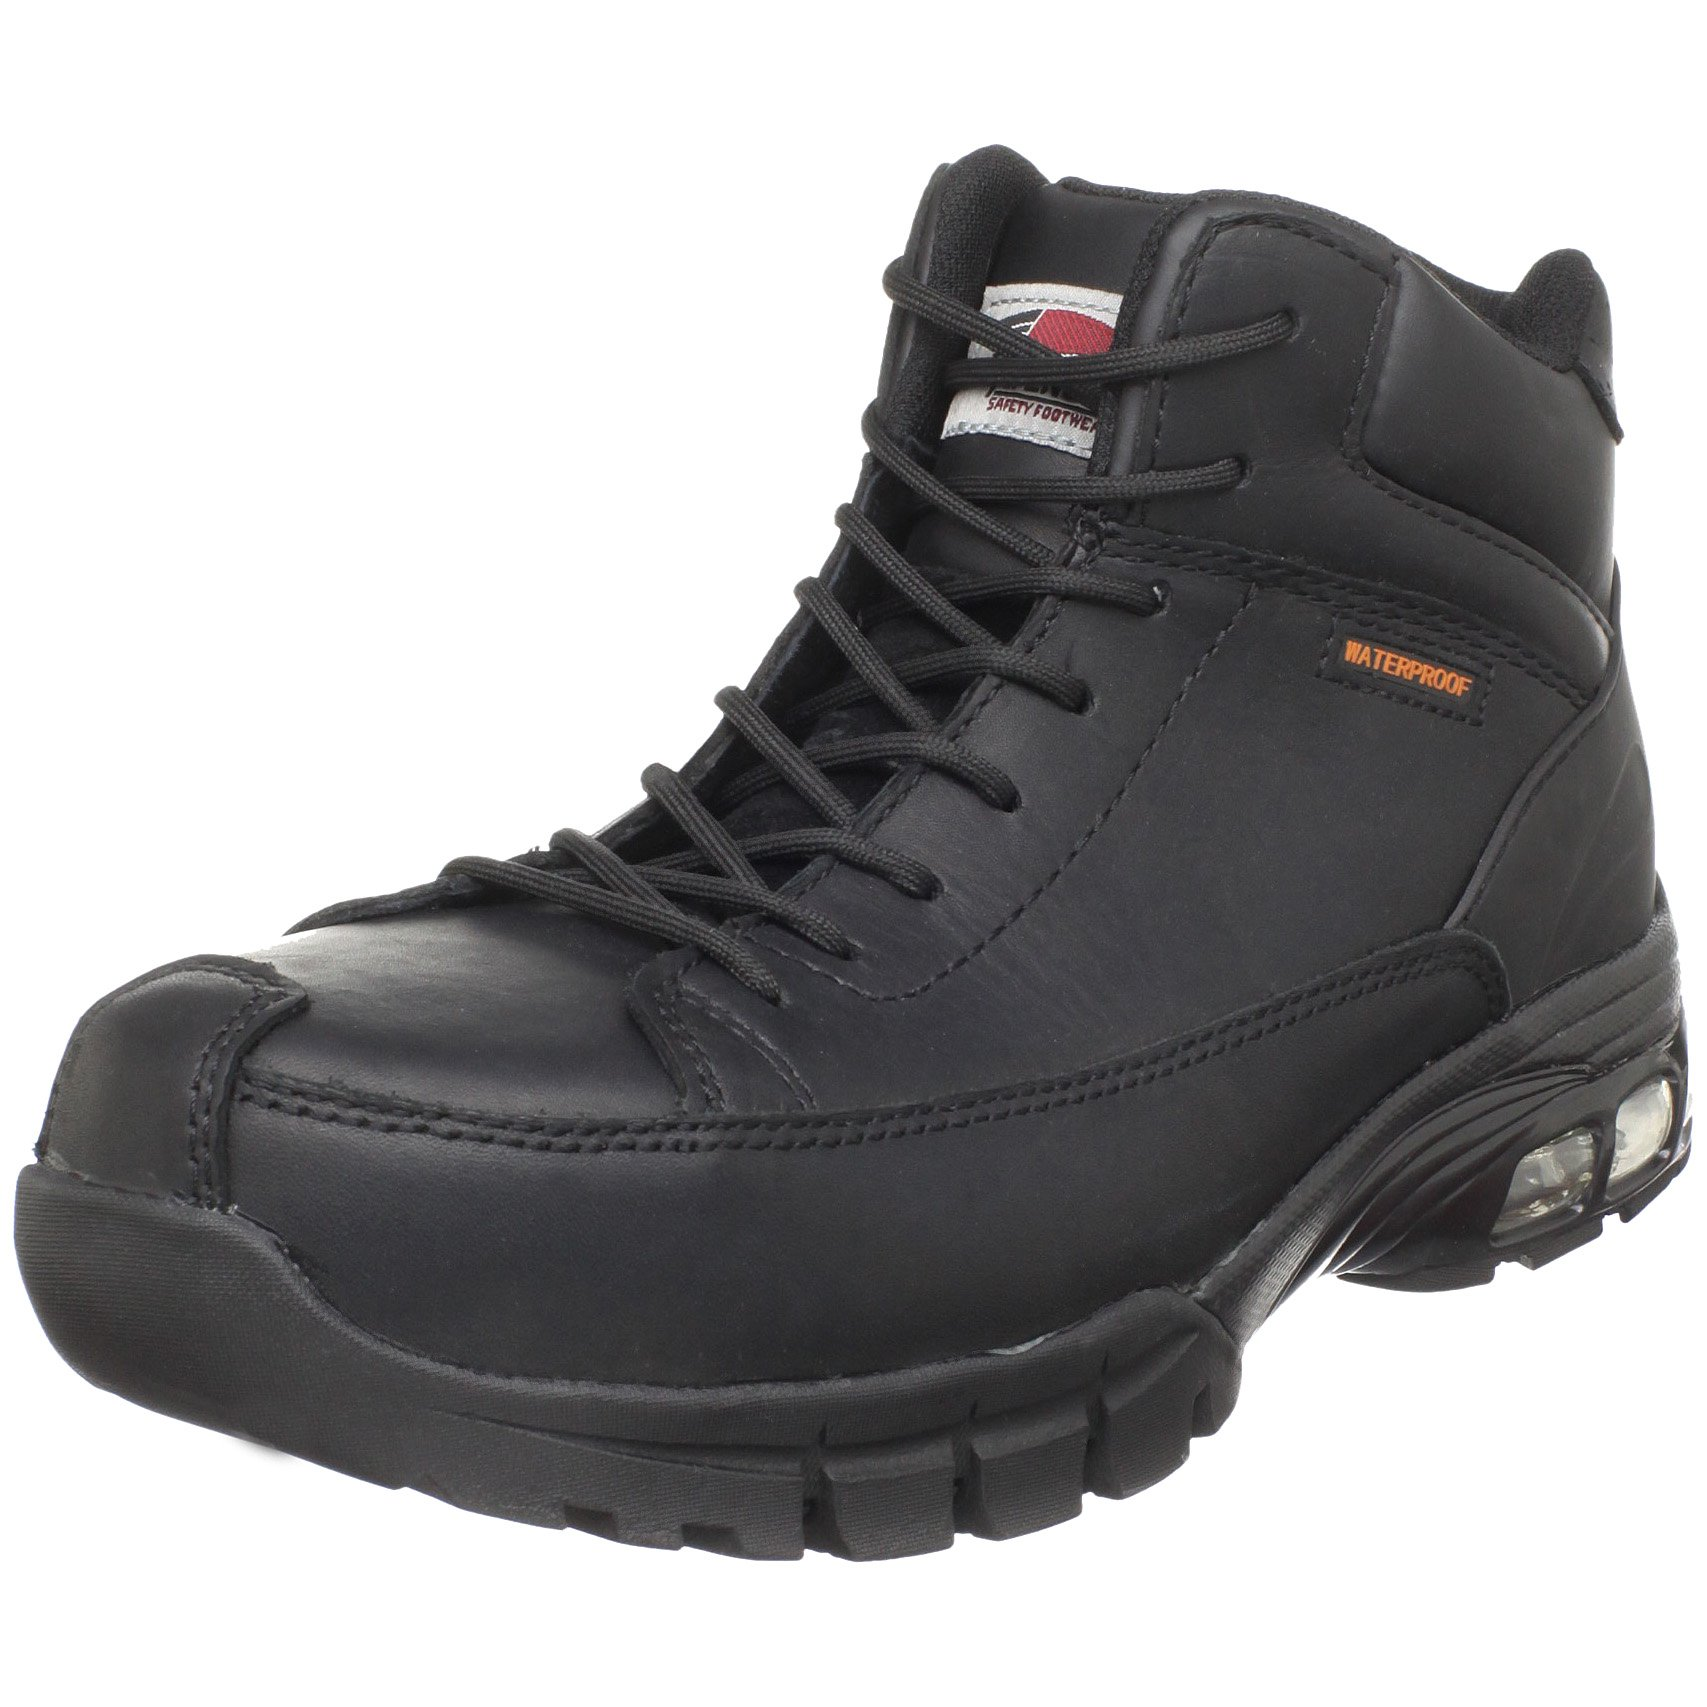 Avenger 7248 Waterproof  Comp Toe No Exposed Metal EH Boot with ABS  Cushioning,Black,9 W US by Avenger Safety Footwear